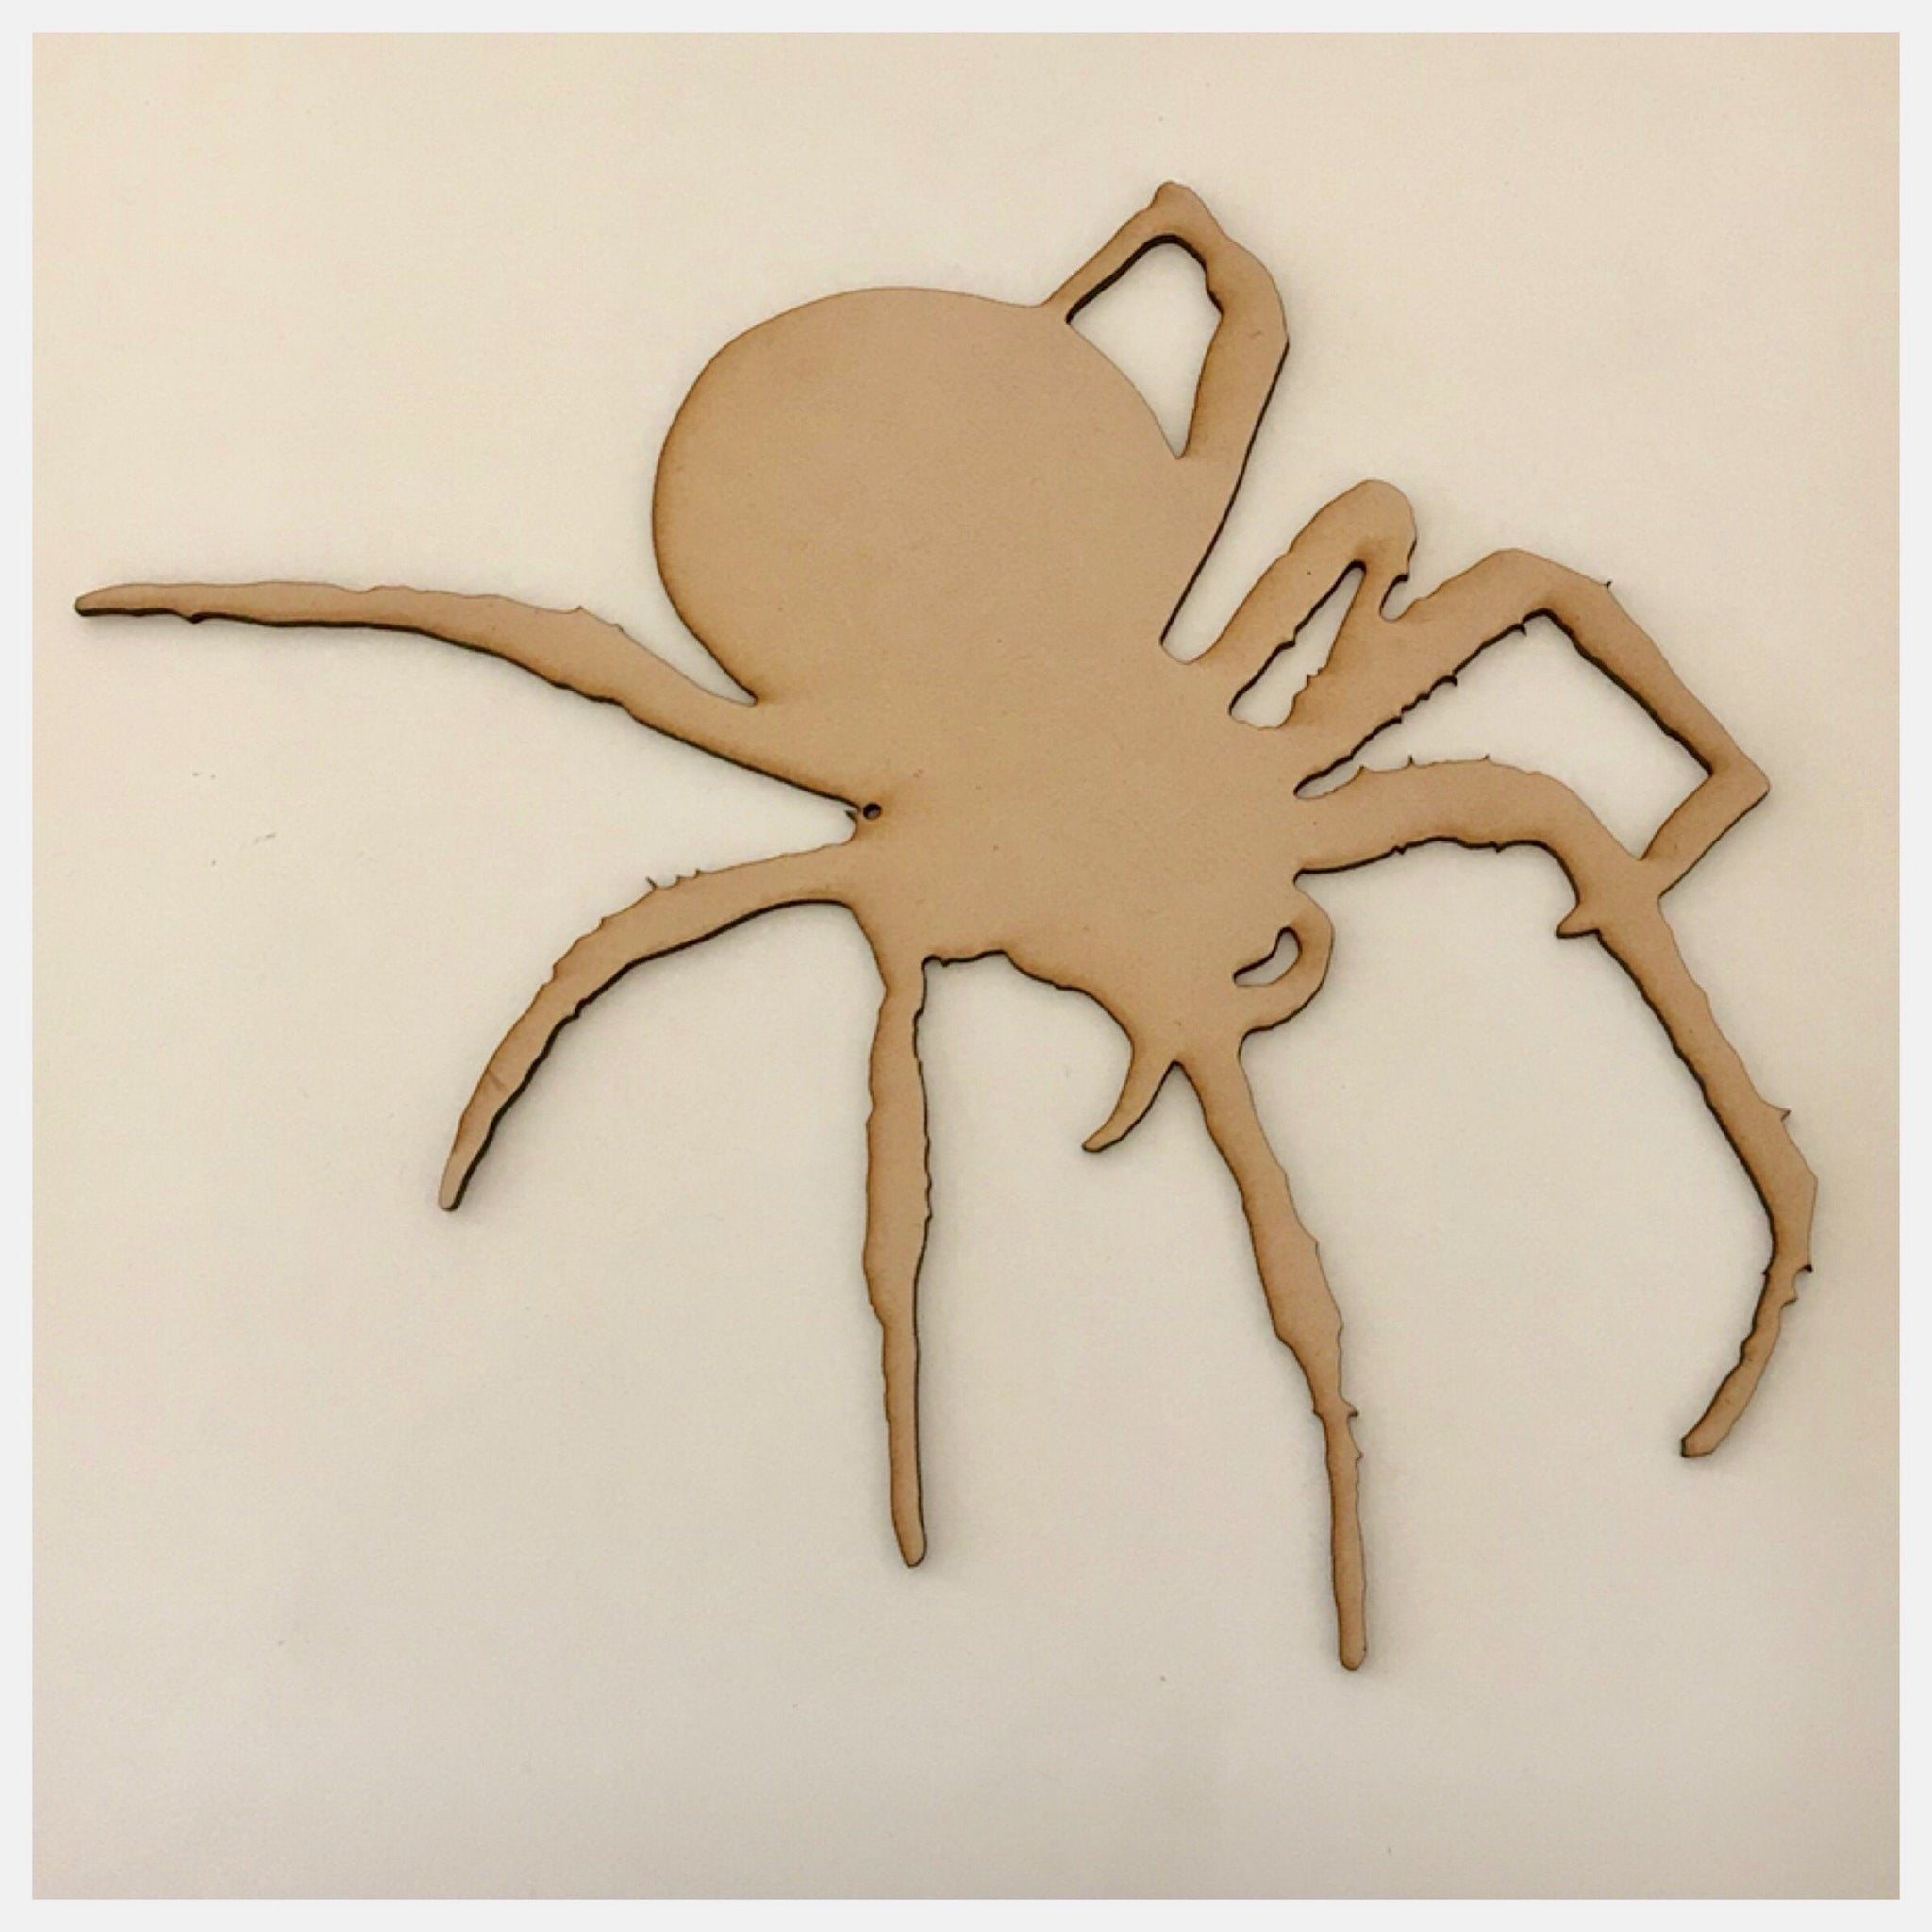 Spider Spiders Tarantula MDF Shape DIY Raw Cut Out Art Craft Decor - The Renmy Store